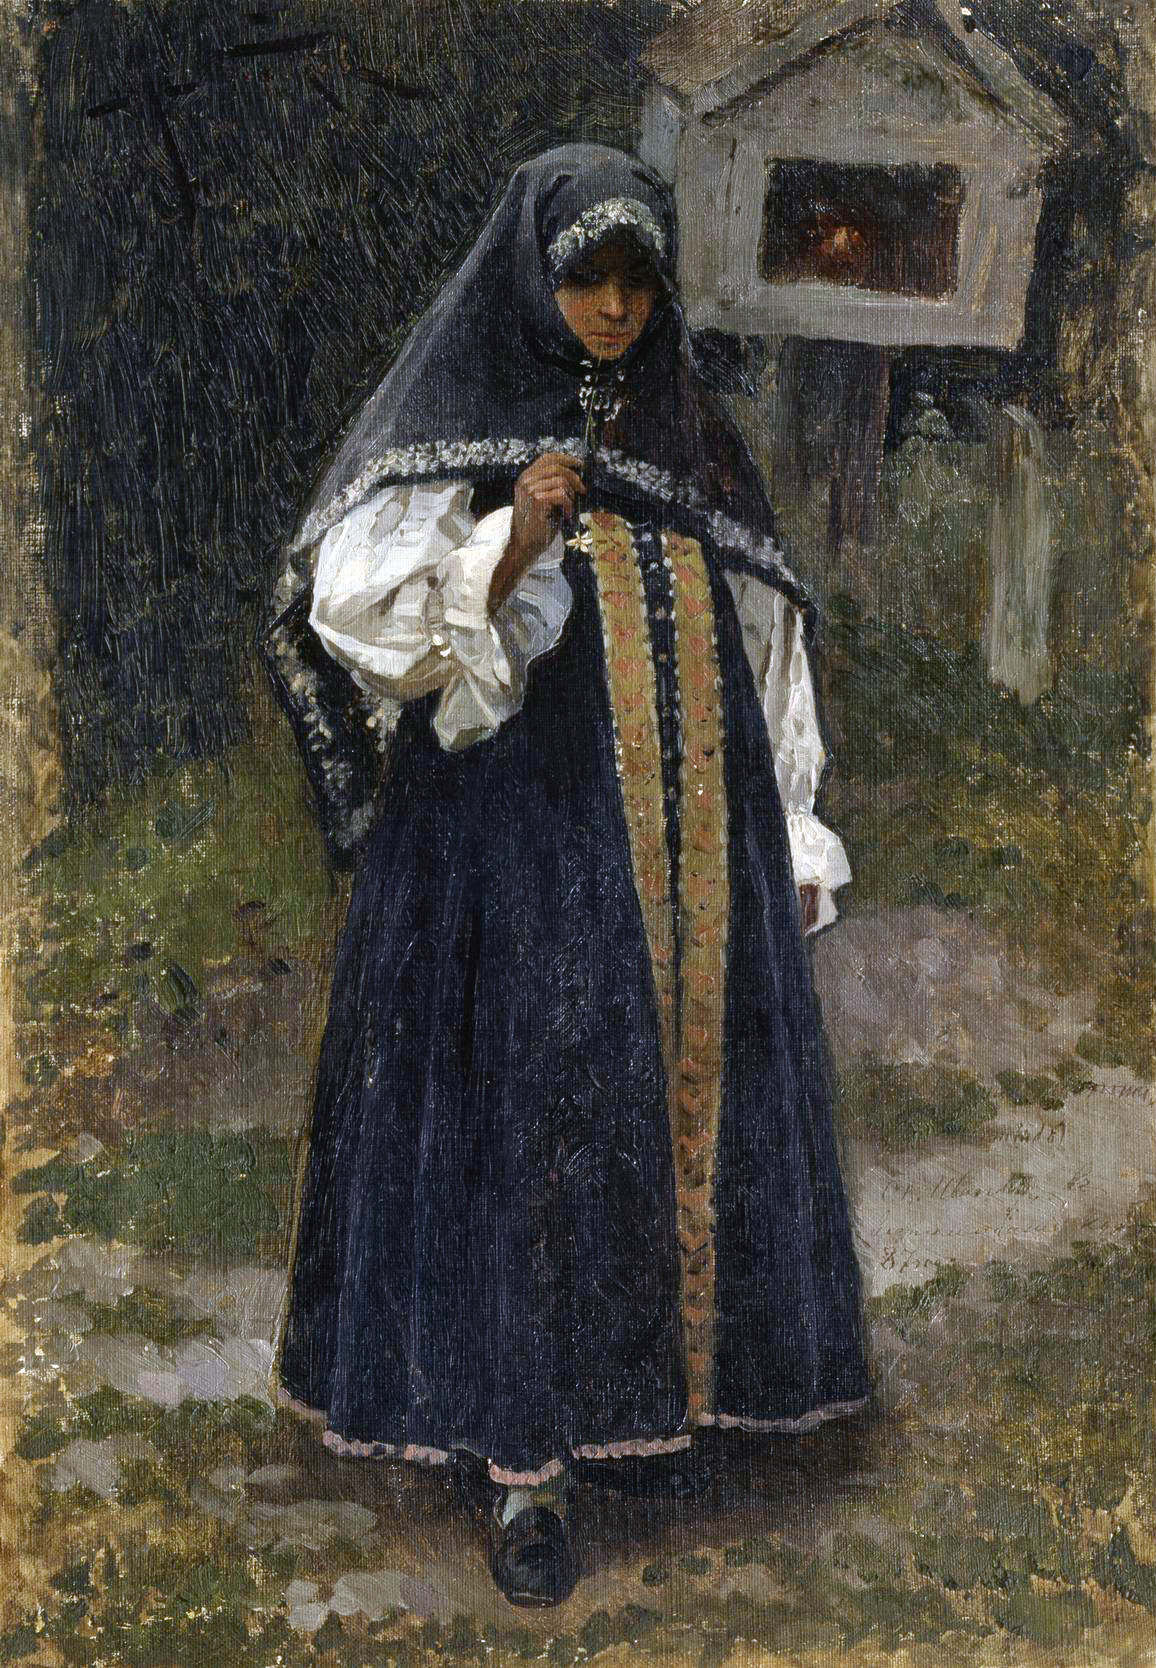 """Mikhail Vasilyevich Nesterov. Girl-Nizhegorodka. Sketch for the second version of the painting """"Christ's bride"""" were in the collection of Grand Duke Sergei Alexandrovich"""